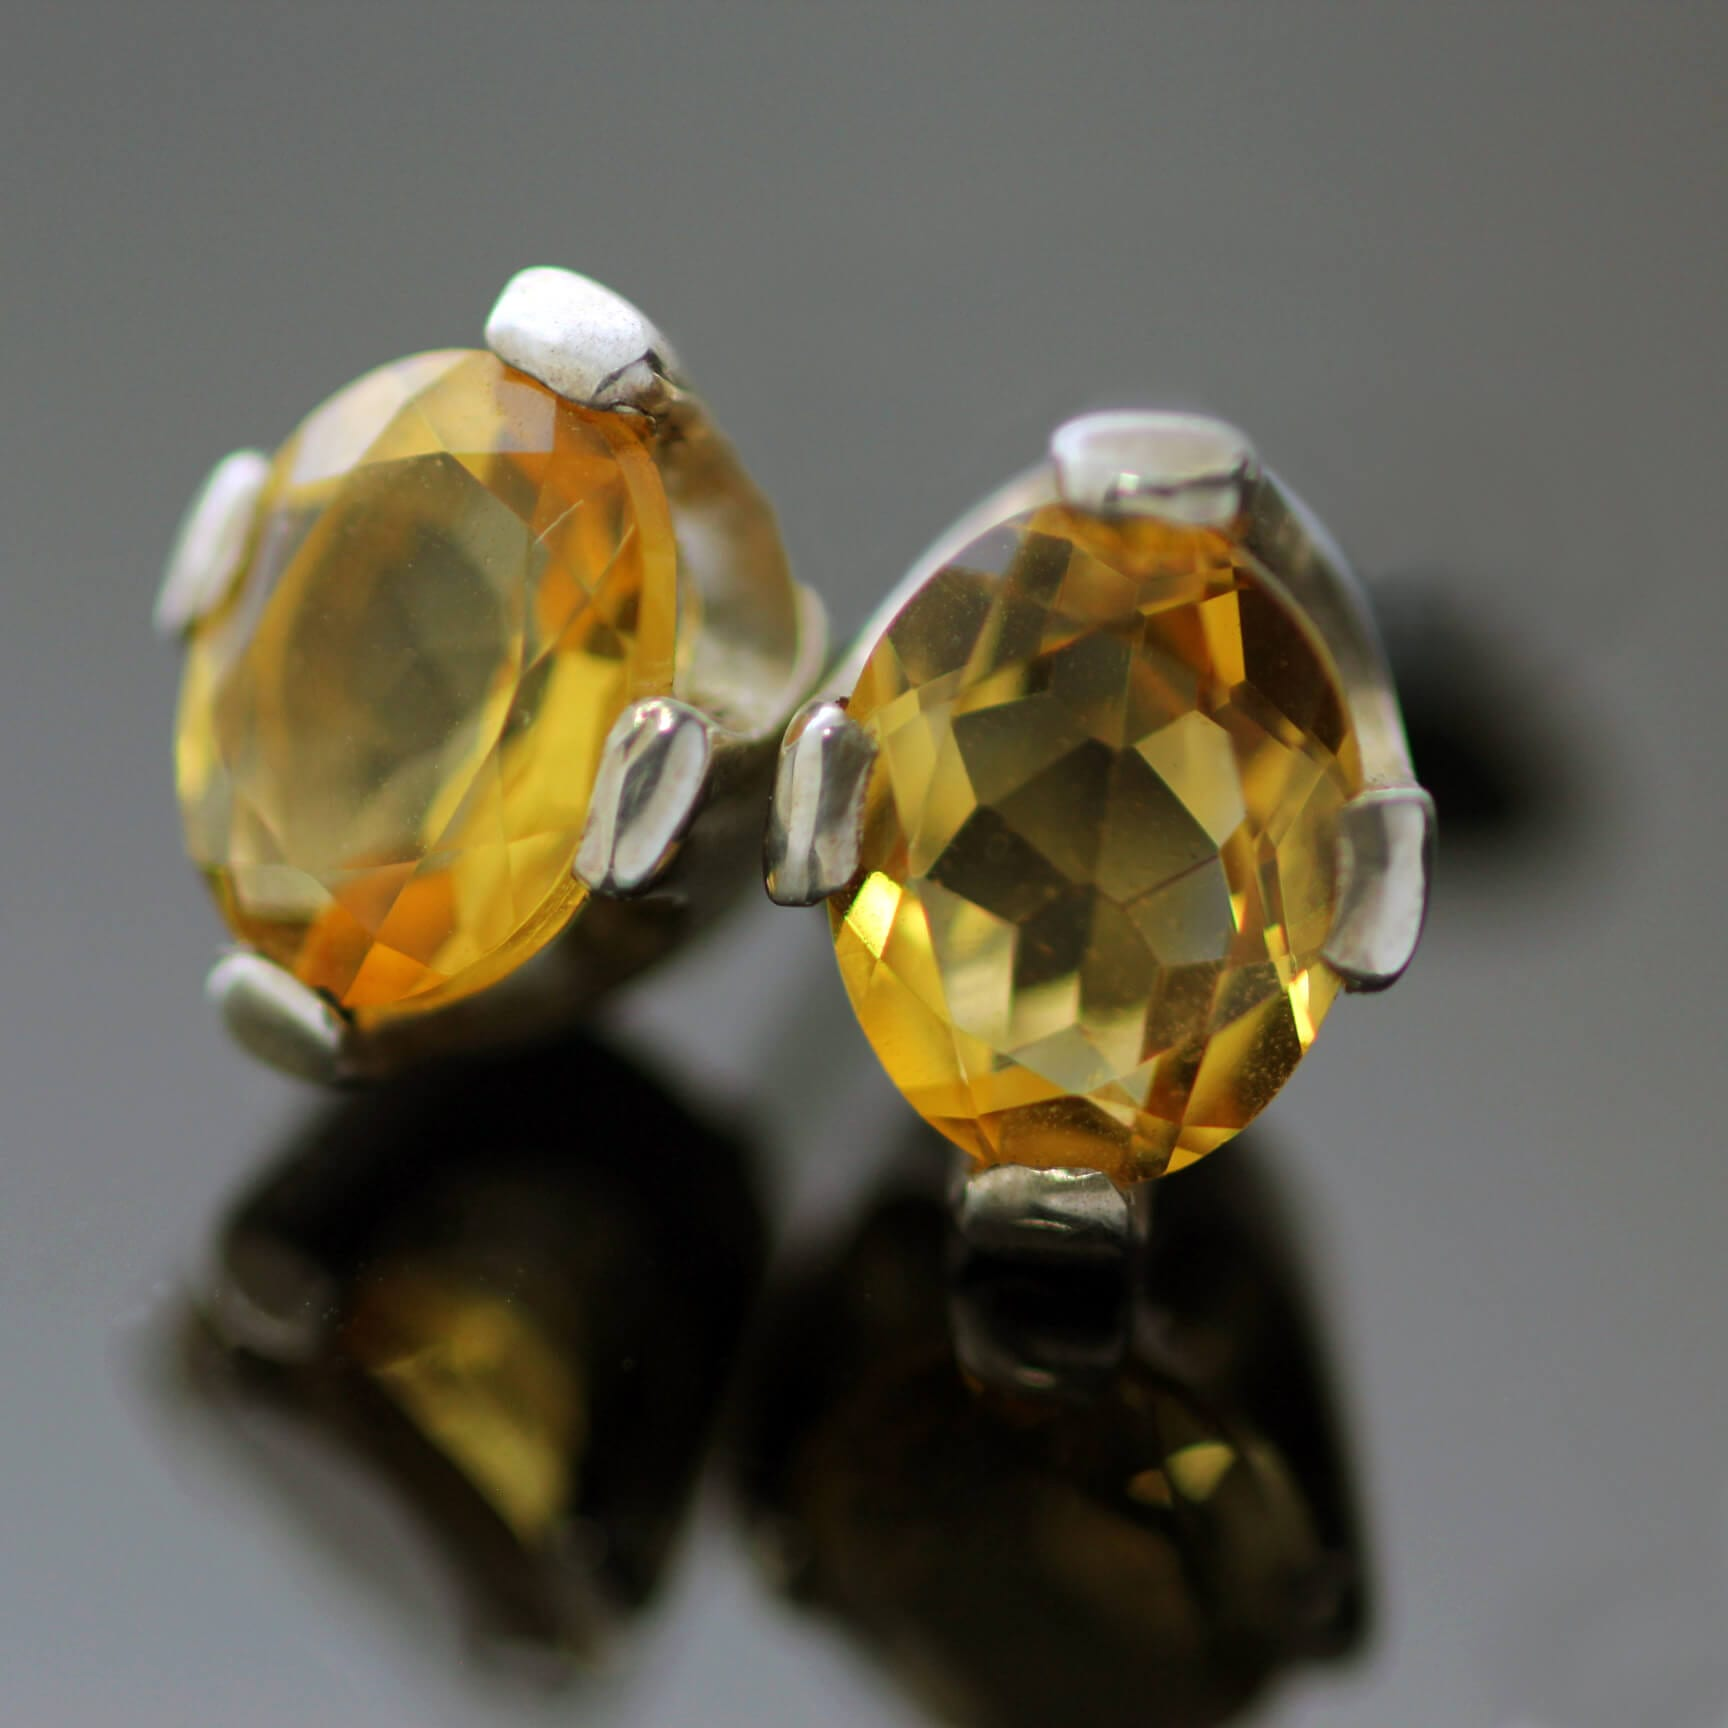 Oval cut Sterling Silver Citrine gemstone stud earrings